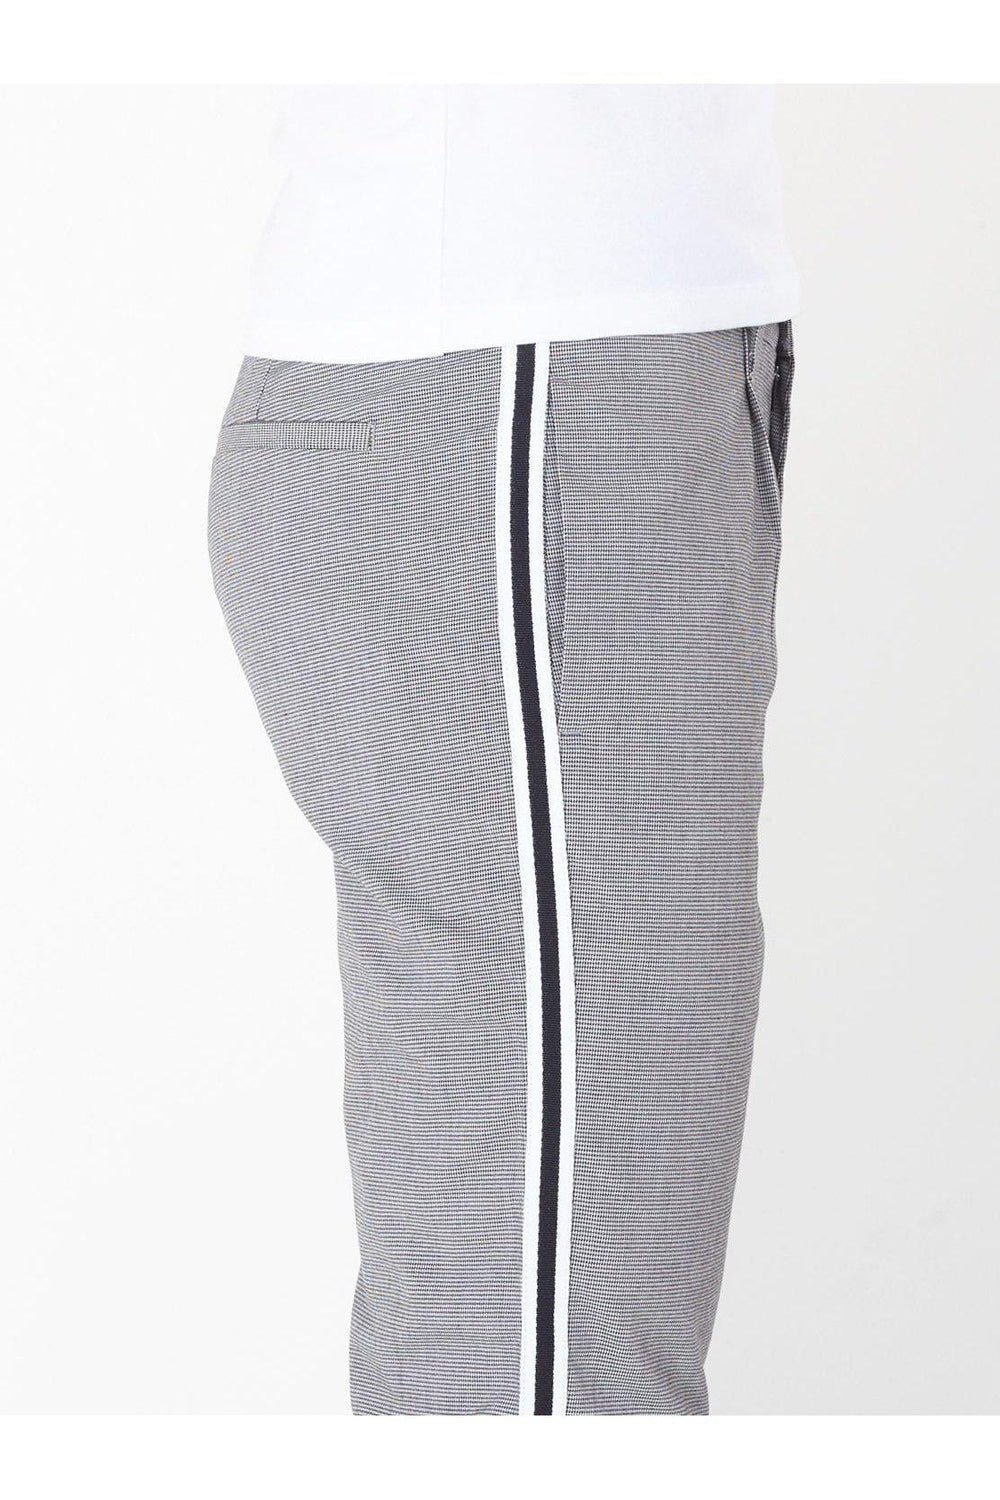 Jersey - Skinny Check Trousers Stripe Grey